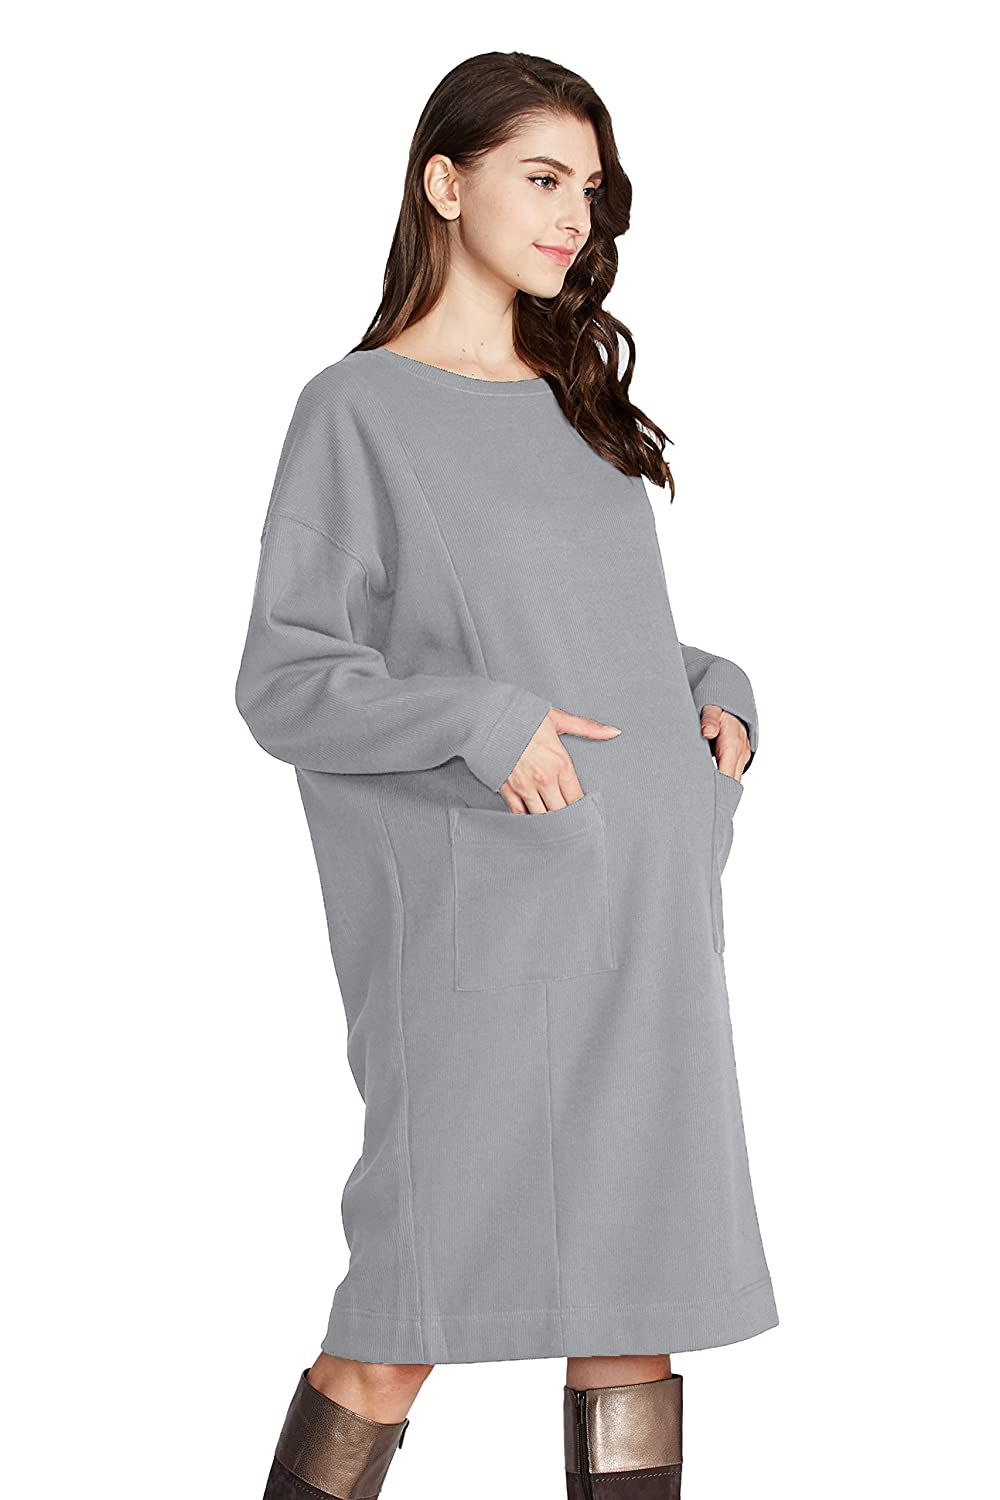 Sweet Mommy Maternity and Nursing Front Pocket Warm Lining Dress bo6117